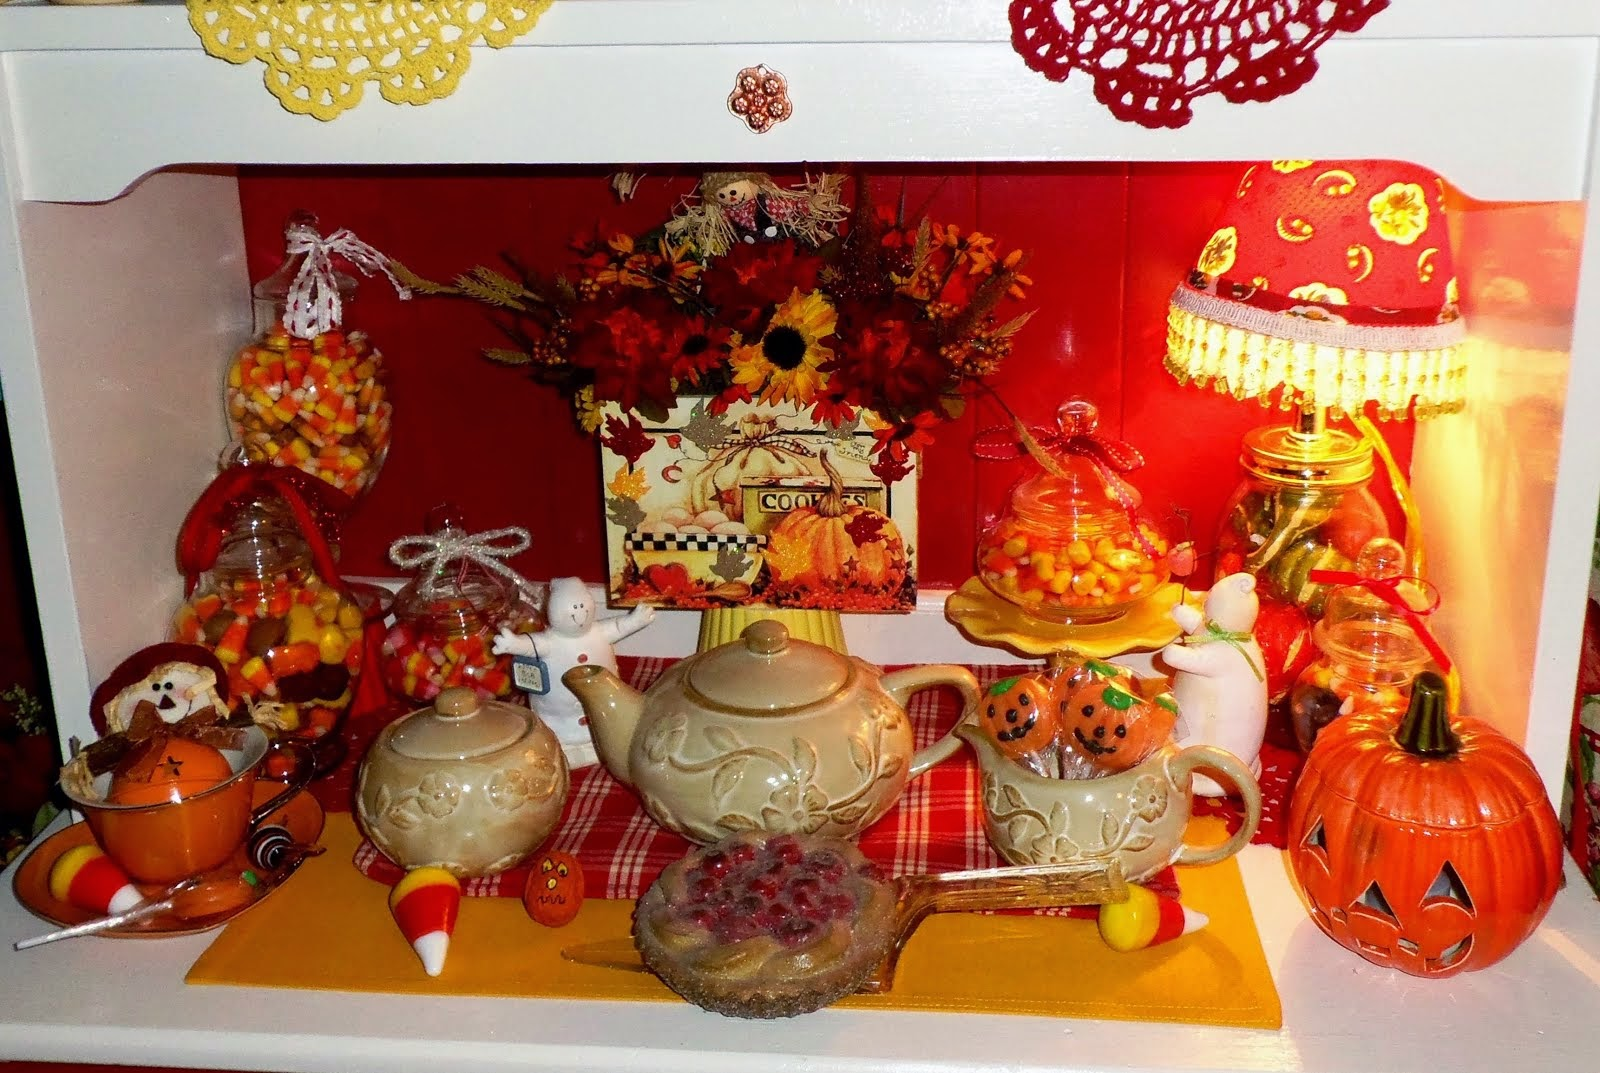 Fall/Halloween Decor in the Kitchen 2014